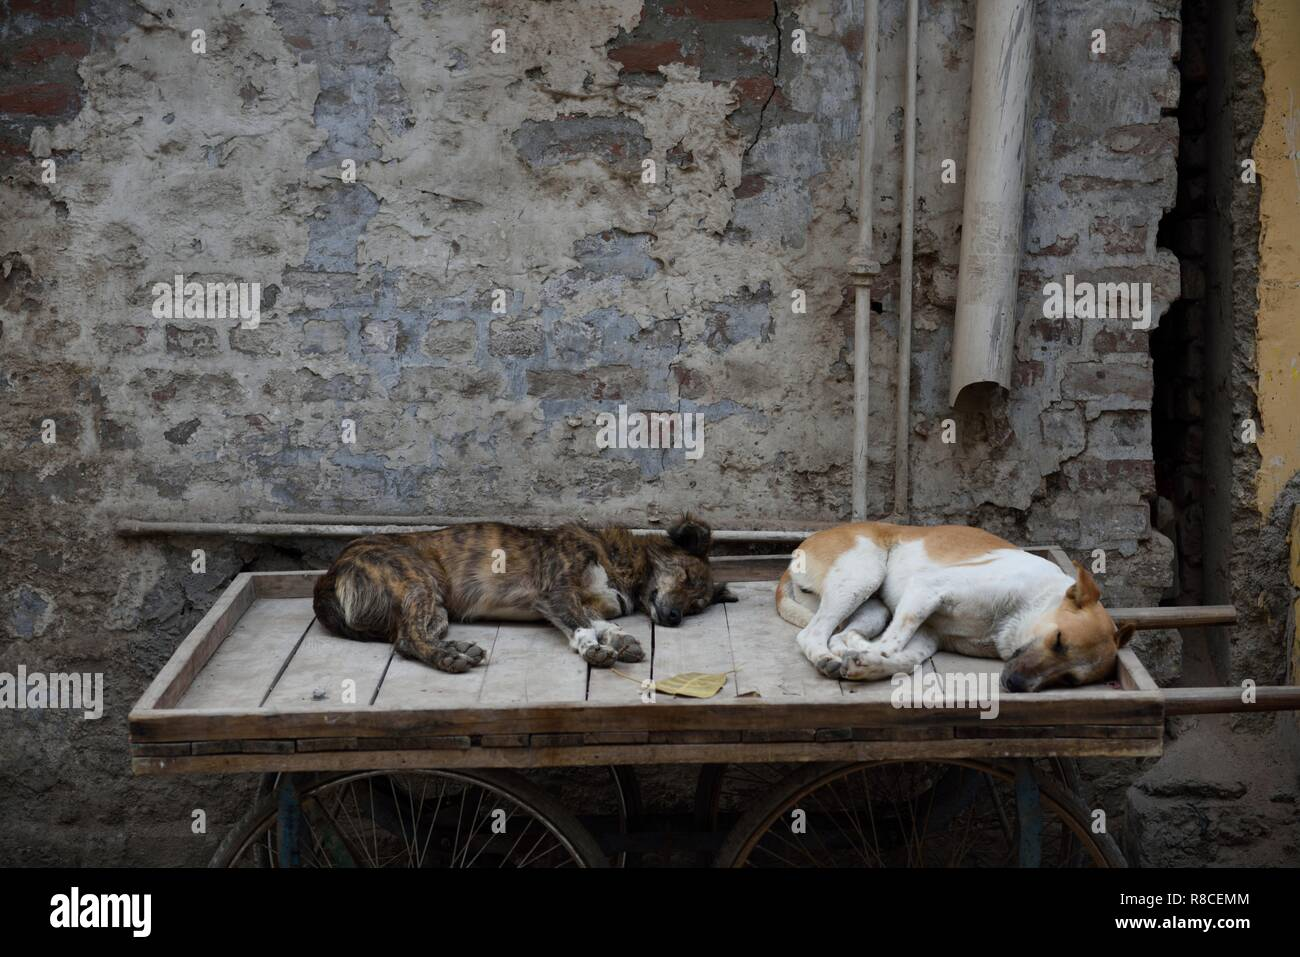 Two dogs sleeping on a wooden push cart in New Delhi, India. Stock Photo